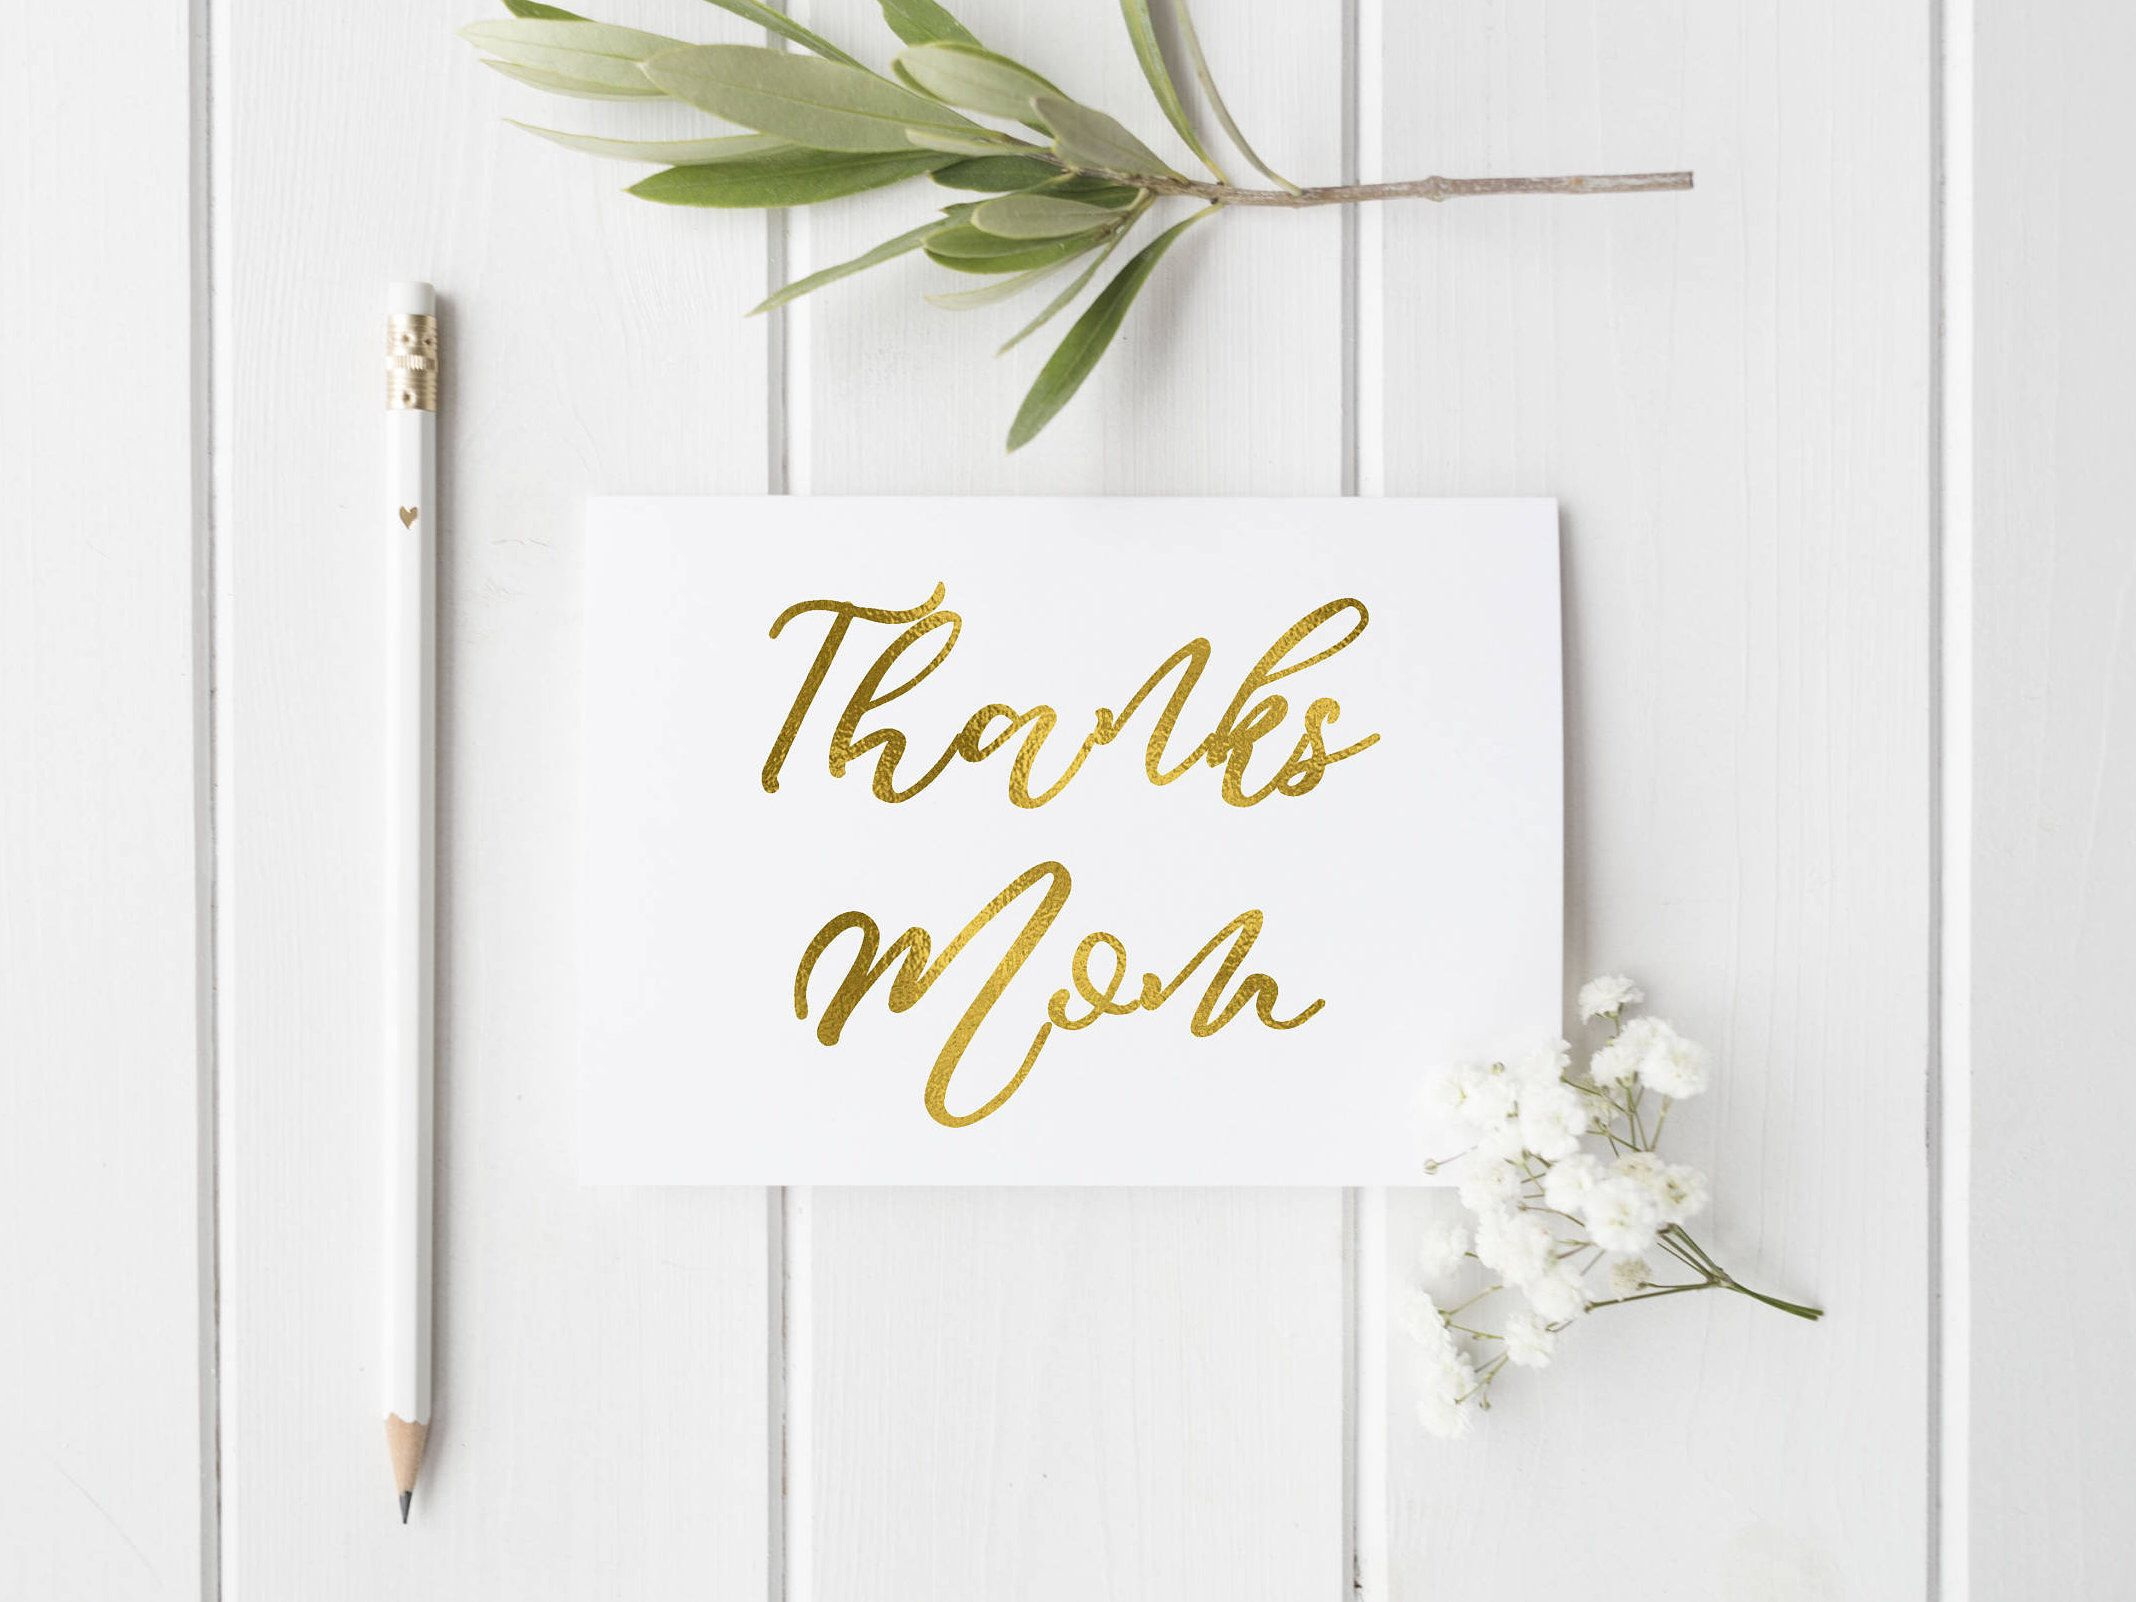 Mother's Day card/ to my mother card/ gold foil card/ moms day/ mothers day card / for my mom/ mom card/ mother card/ happy mother's day by CatePaperCo on Etsy https://www.etsy.com/listing/525922763/mothers-day-card-to-my-mother-card-gold